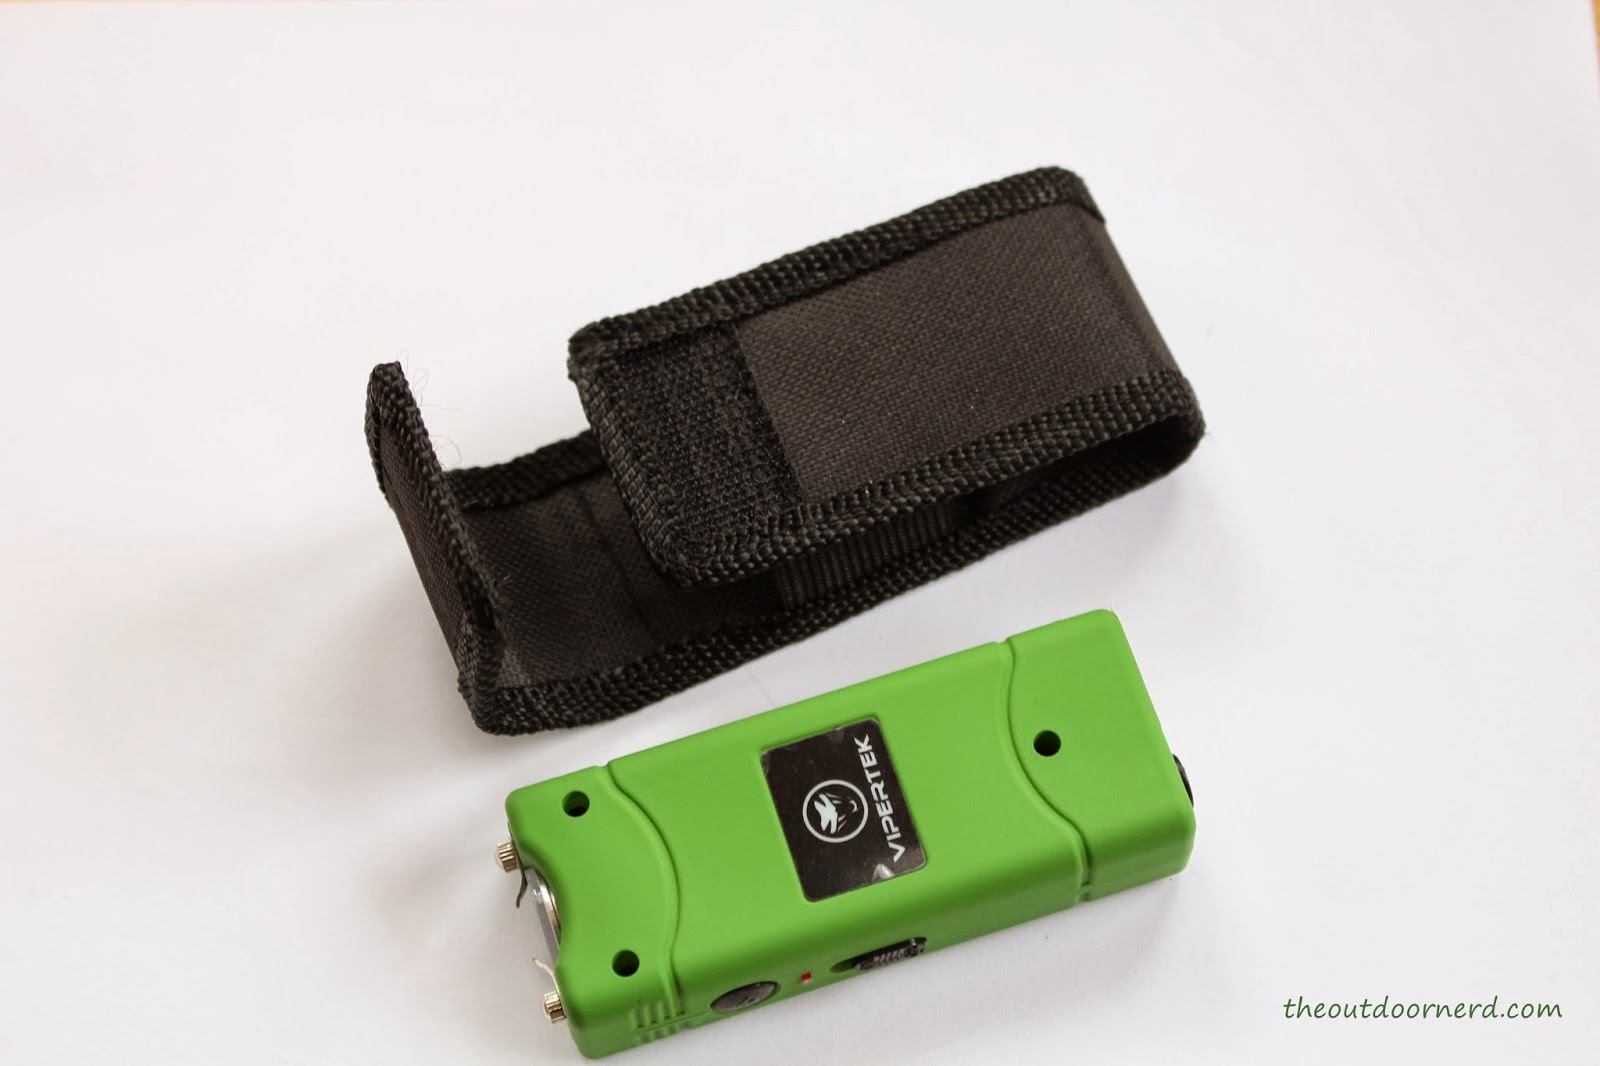 Vipertek VTS-881: Green One Next To Sheath